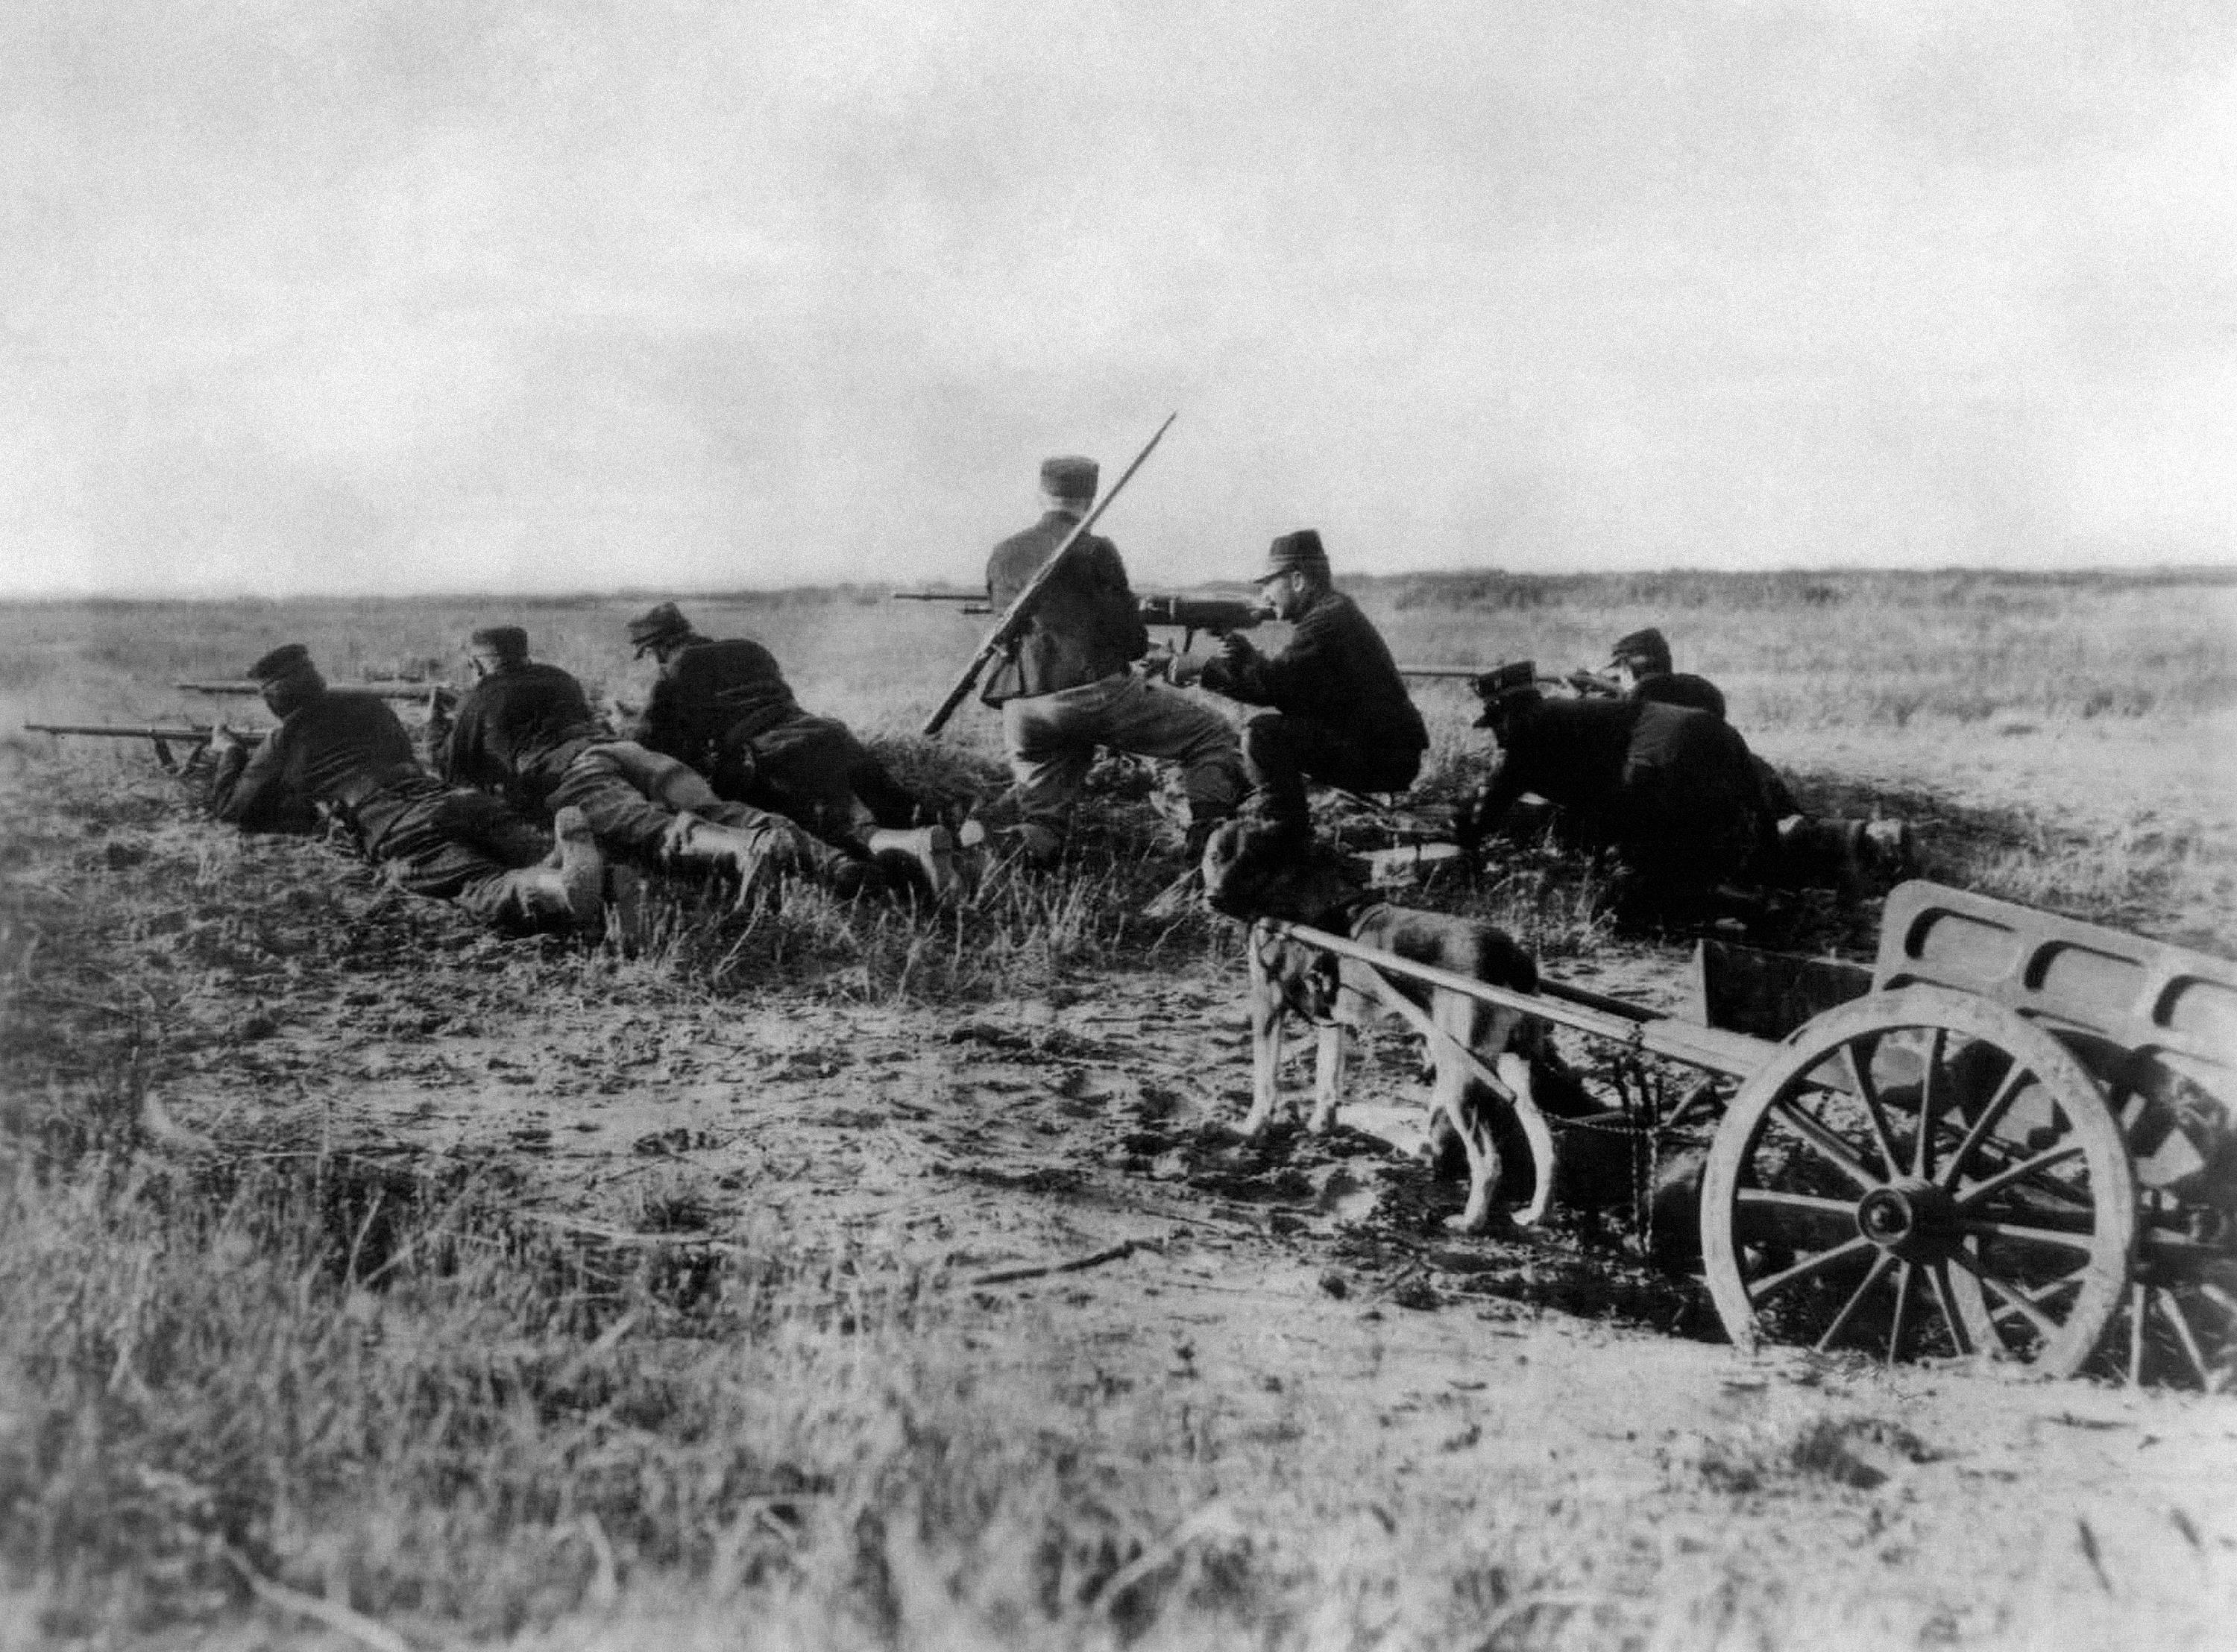 11 OF 100: In this August 1914 file photo, a Belgian machine gun detachment sets up near Haelen, Belgium. The Belgians often used dogs to draw the ammunitions cart. The Battle of Haelen was also known as the Battle of the Silver Helmets.